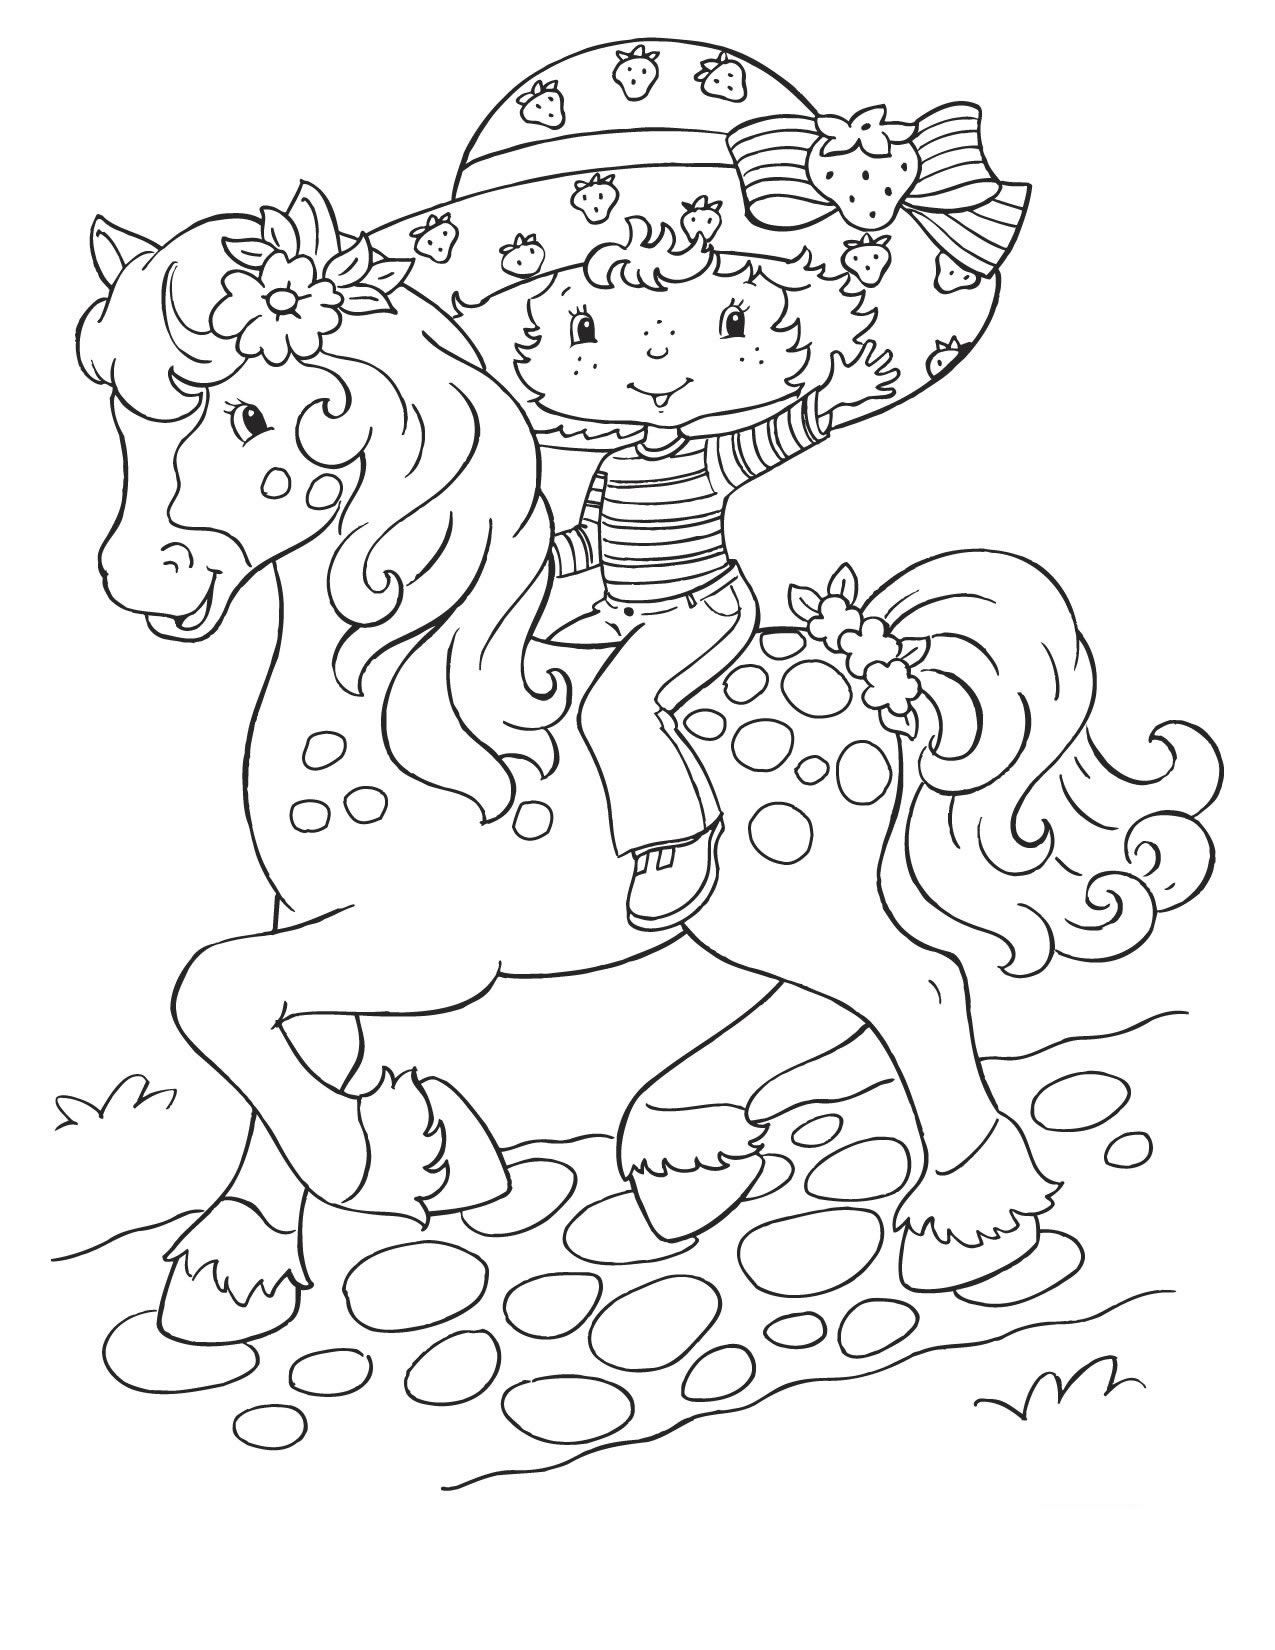 coloring pages : Free Friendship Coloring Pages Lovely Printable ... | 1650x1275